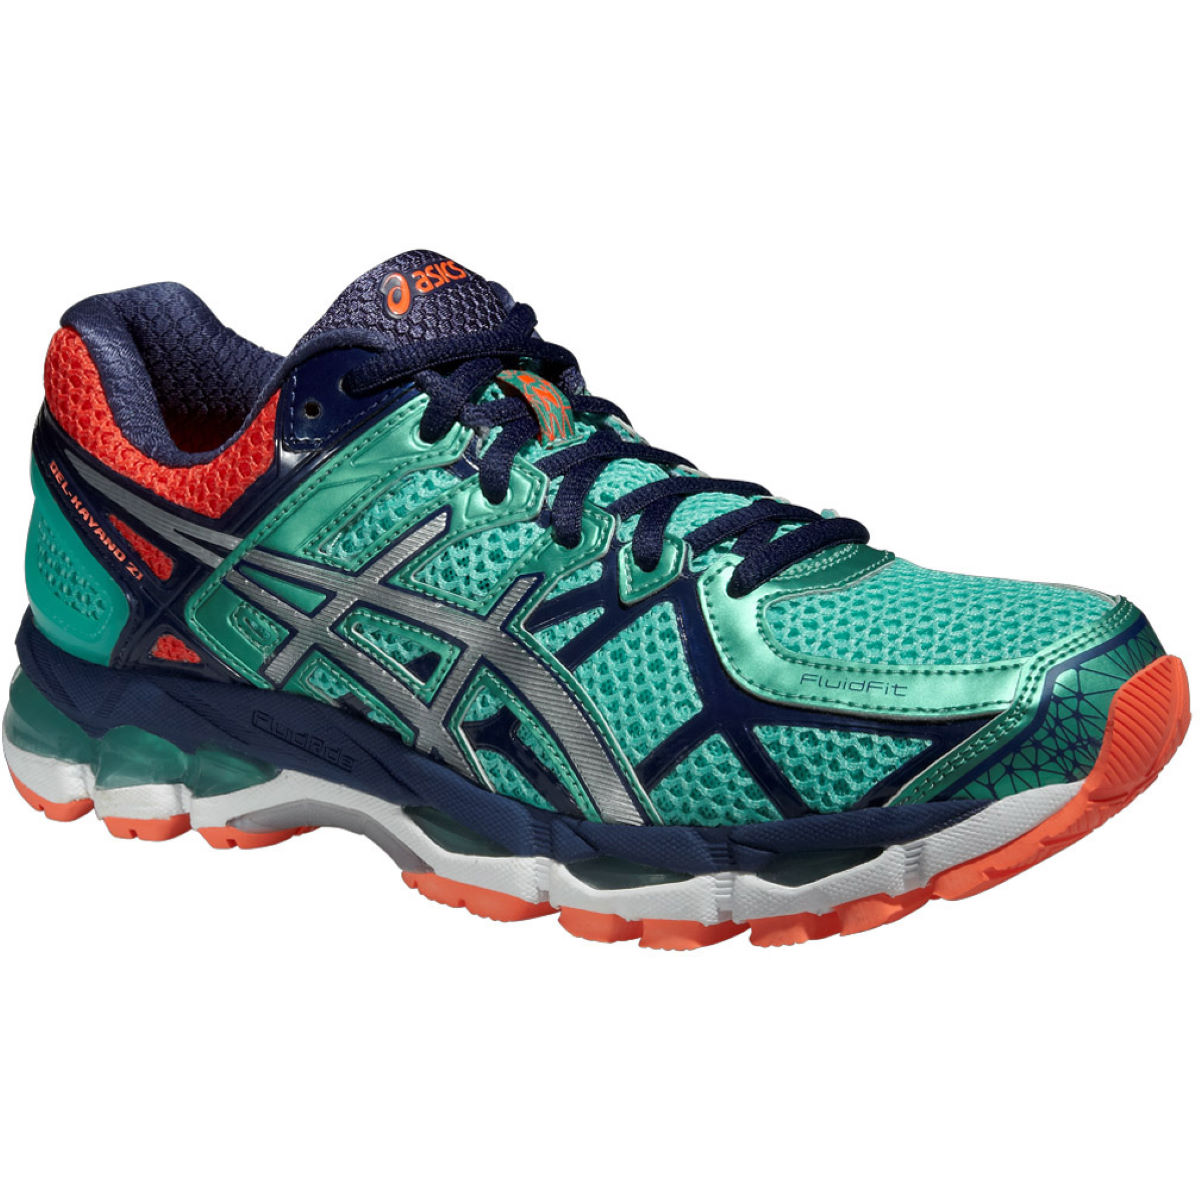 asics womens gel kayano 22 shoes coral stability running shoes